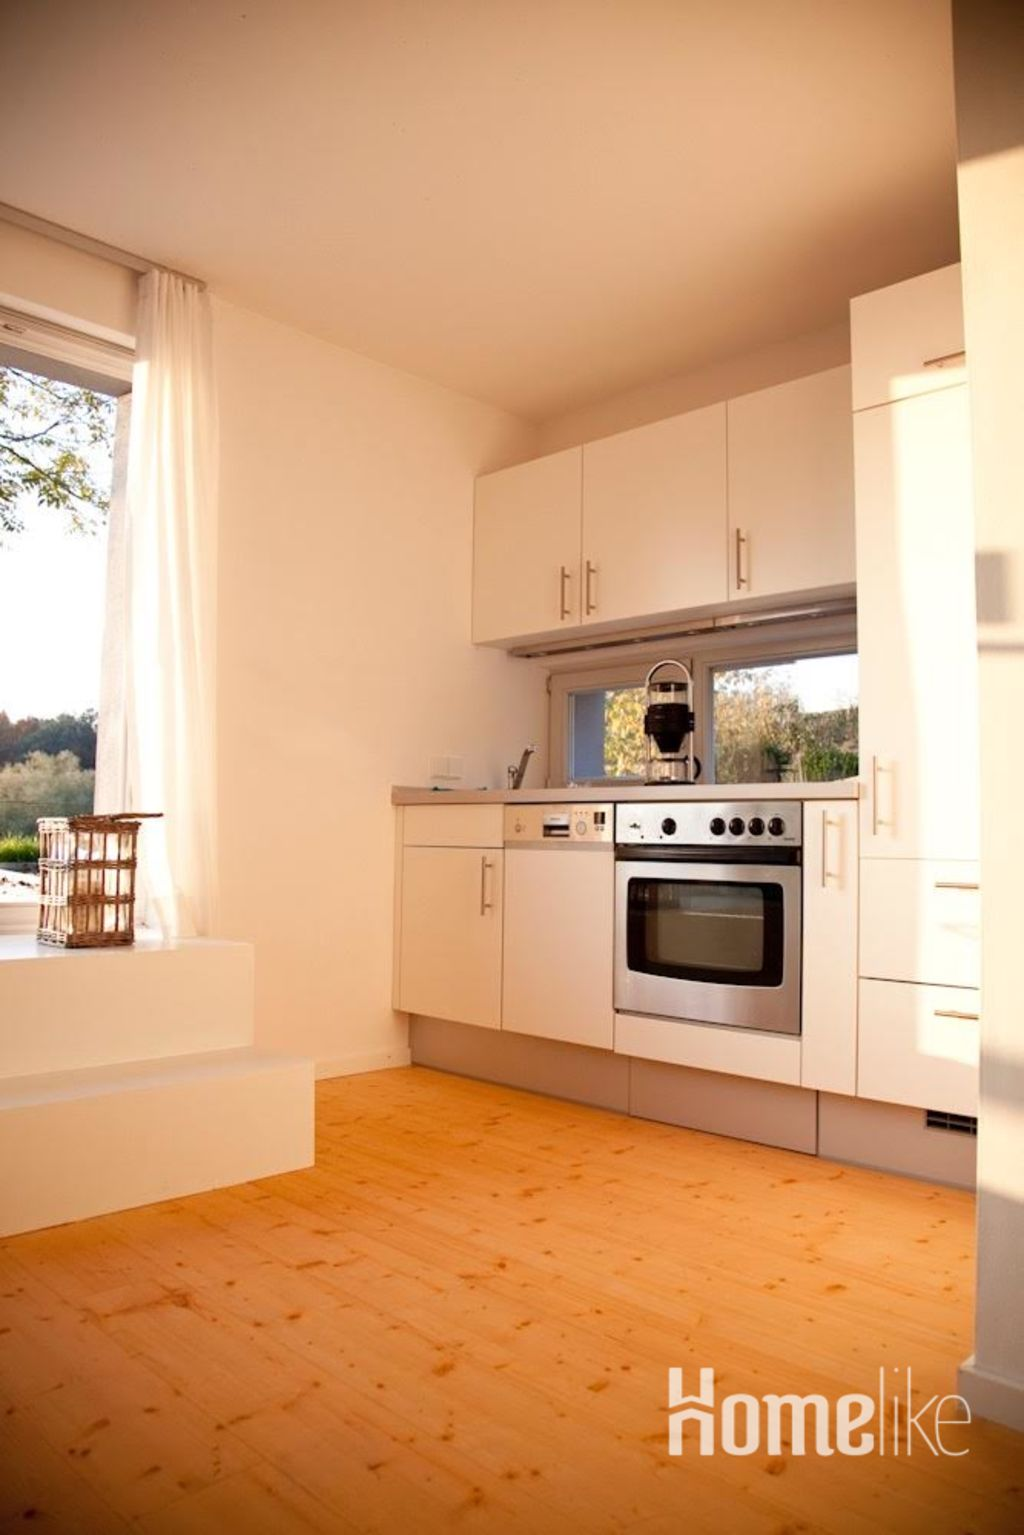 image 3 furnished 1 bedroom Apartment for rent in Landsberg, Bavaria (Munich)